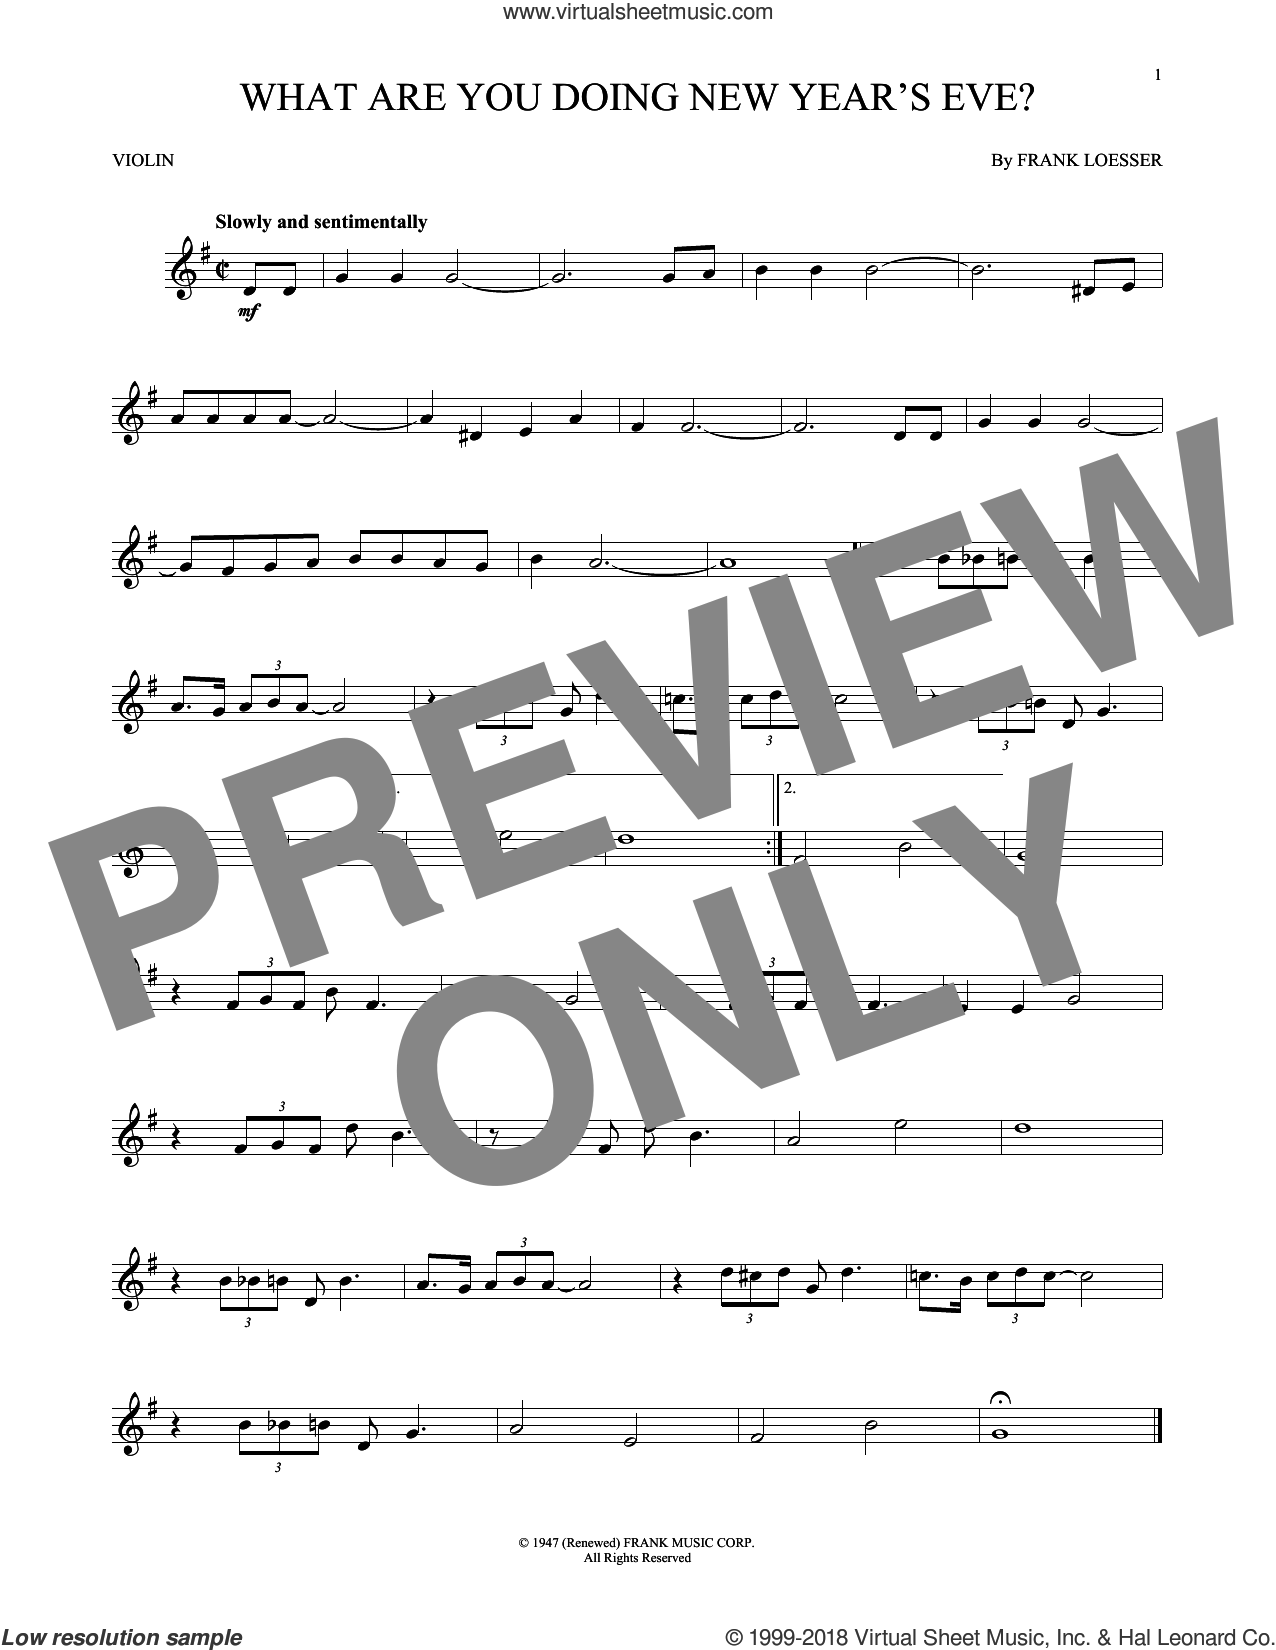 What Are You Doing New Year's Eve? sheet music for violin solo by Frank Loesser, intermediate skill level